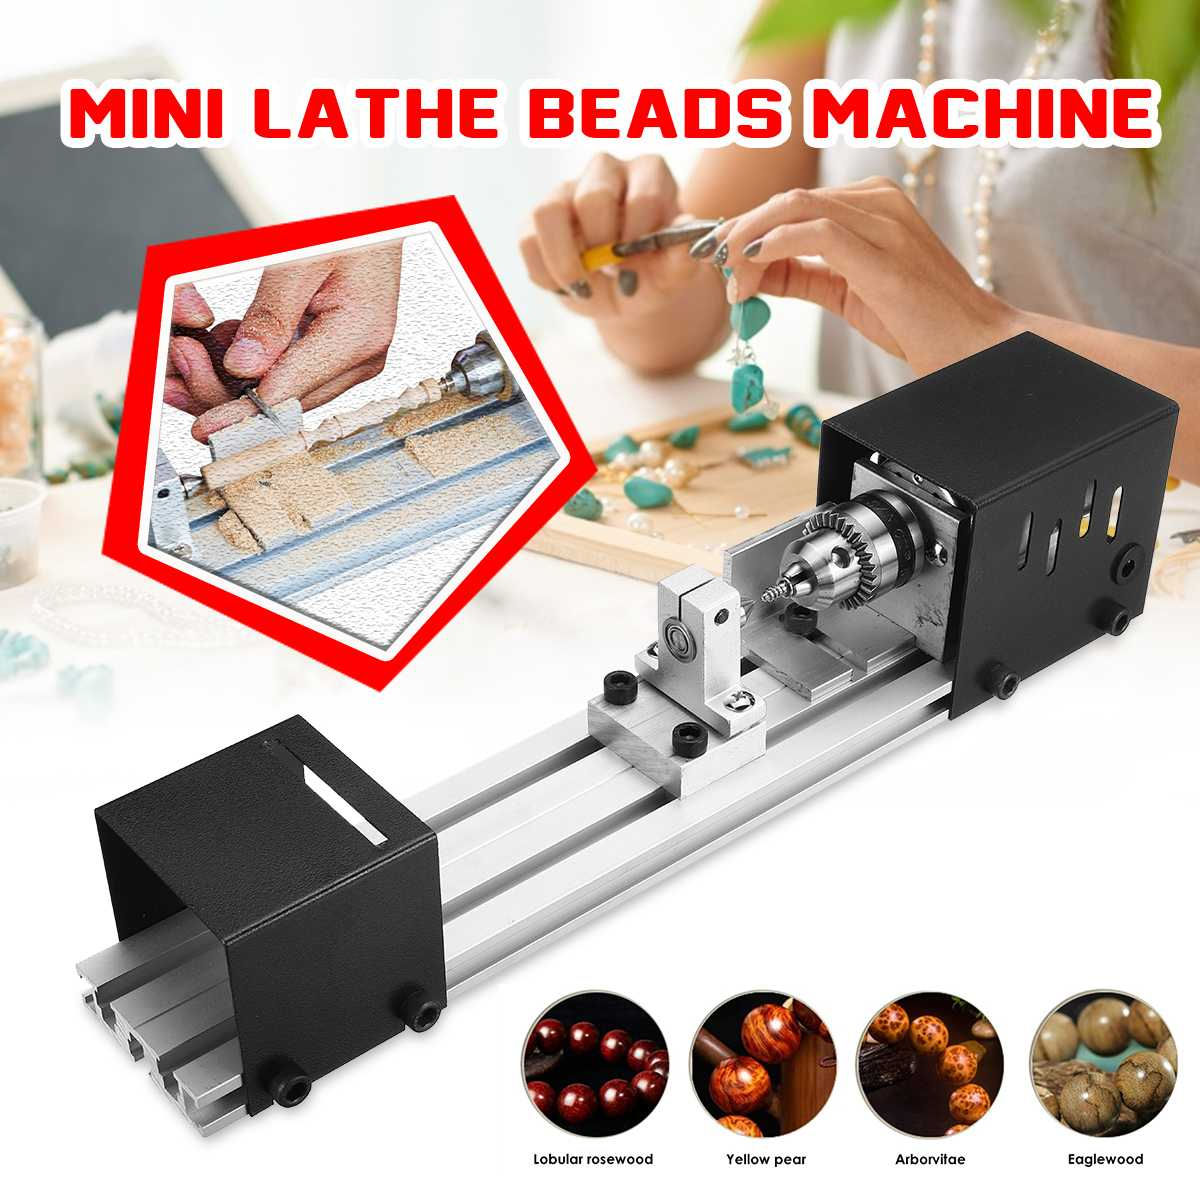 Mini Lathe Beads Machine DIY Woodworking Lathe Polishing Grinding Drill Tool Carving Cutter Wood Lathe 100W Polishing Drill Tool